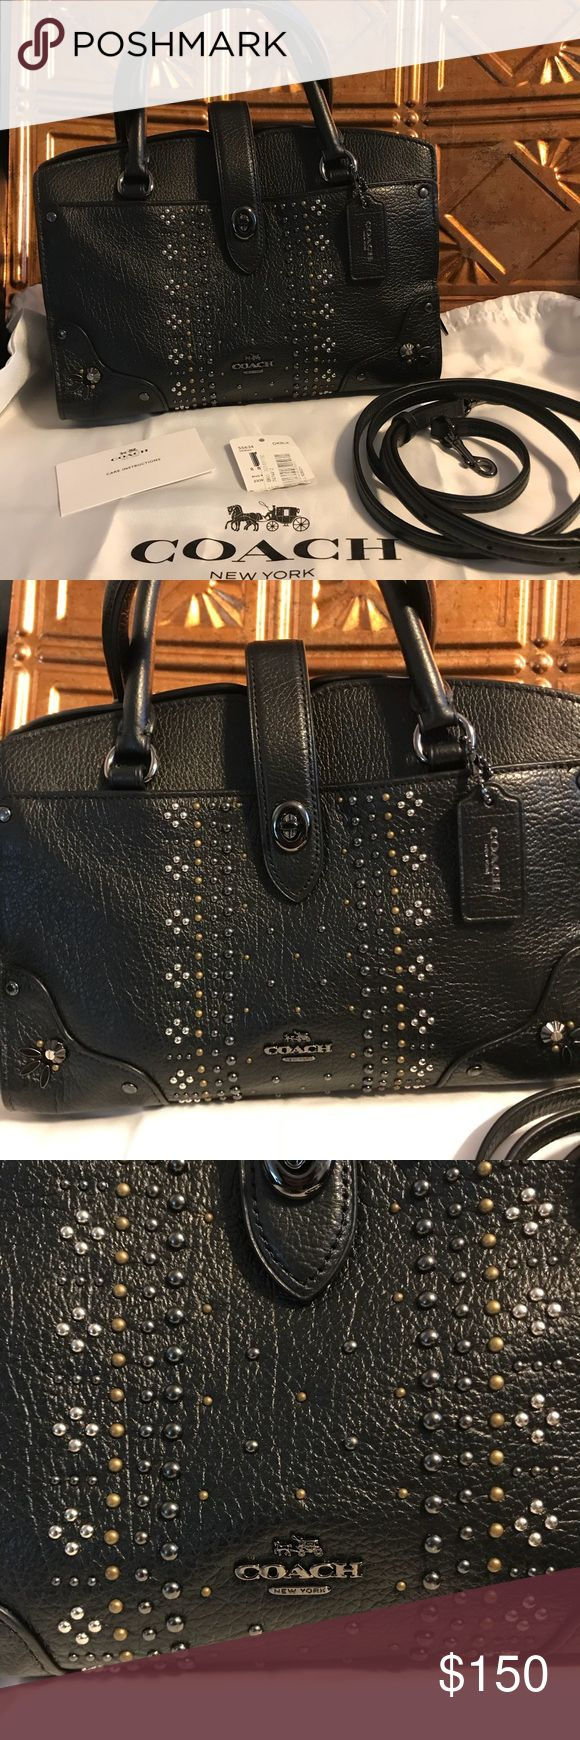 HOT!!!!! Coach Mini Crossover Handbag with strap! Used twice! In epic condition! It is adorable and all intact! Nothing wrong at all :) I am a Writer so I always have a hard time looking or getting the perfect bag! Lol I need big bags! But this is super cute for a nite out or just as a regular handbag! Hot deal and hot item lady's! Comes with strap and care card and price tag and duster! Sorry can not help with measurements don't own a tape ruler the strap is adjustable! PRICE IS AS IS and…